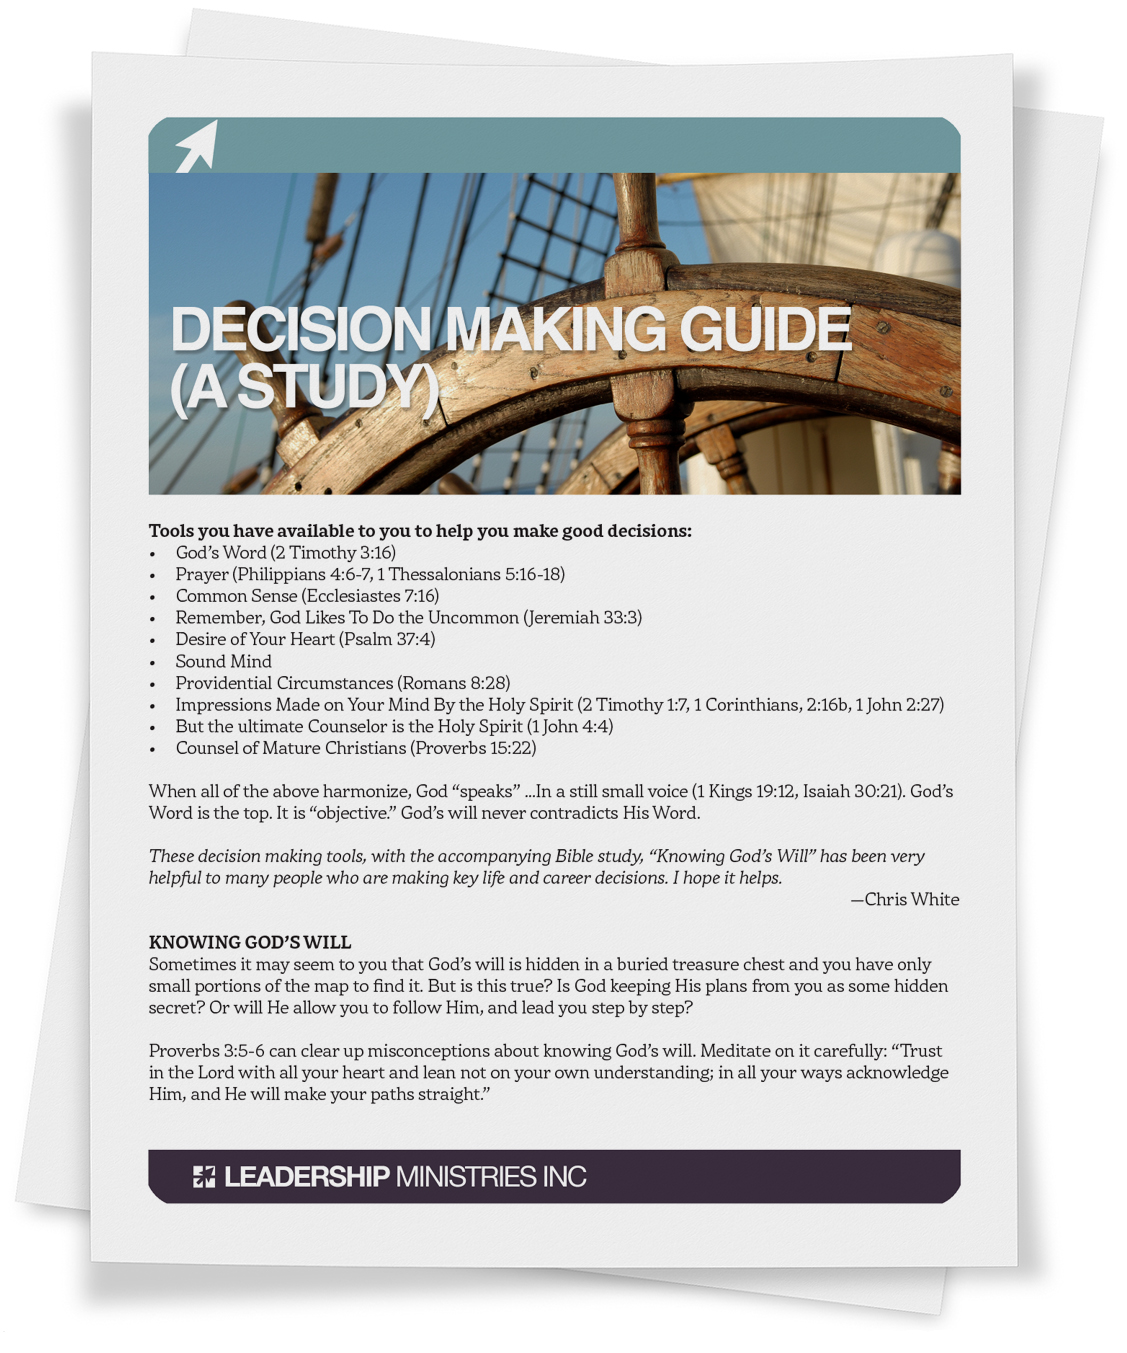 Decision Making Guide (A Study)